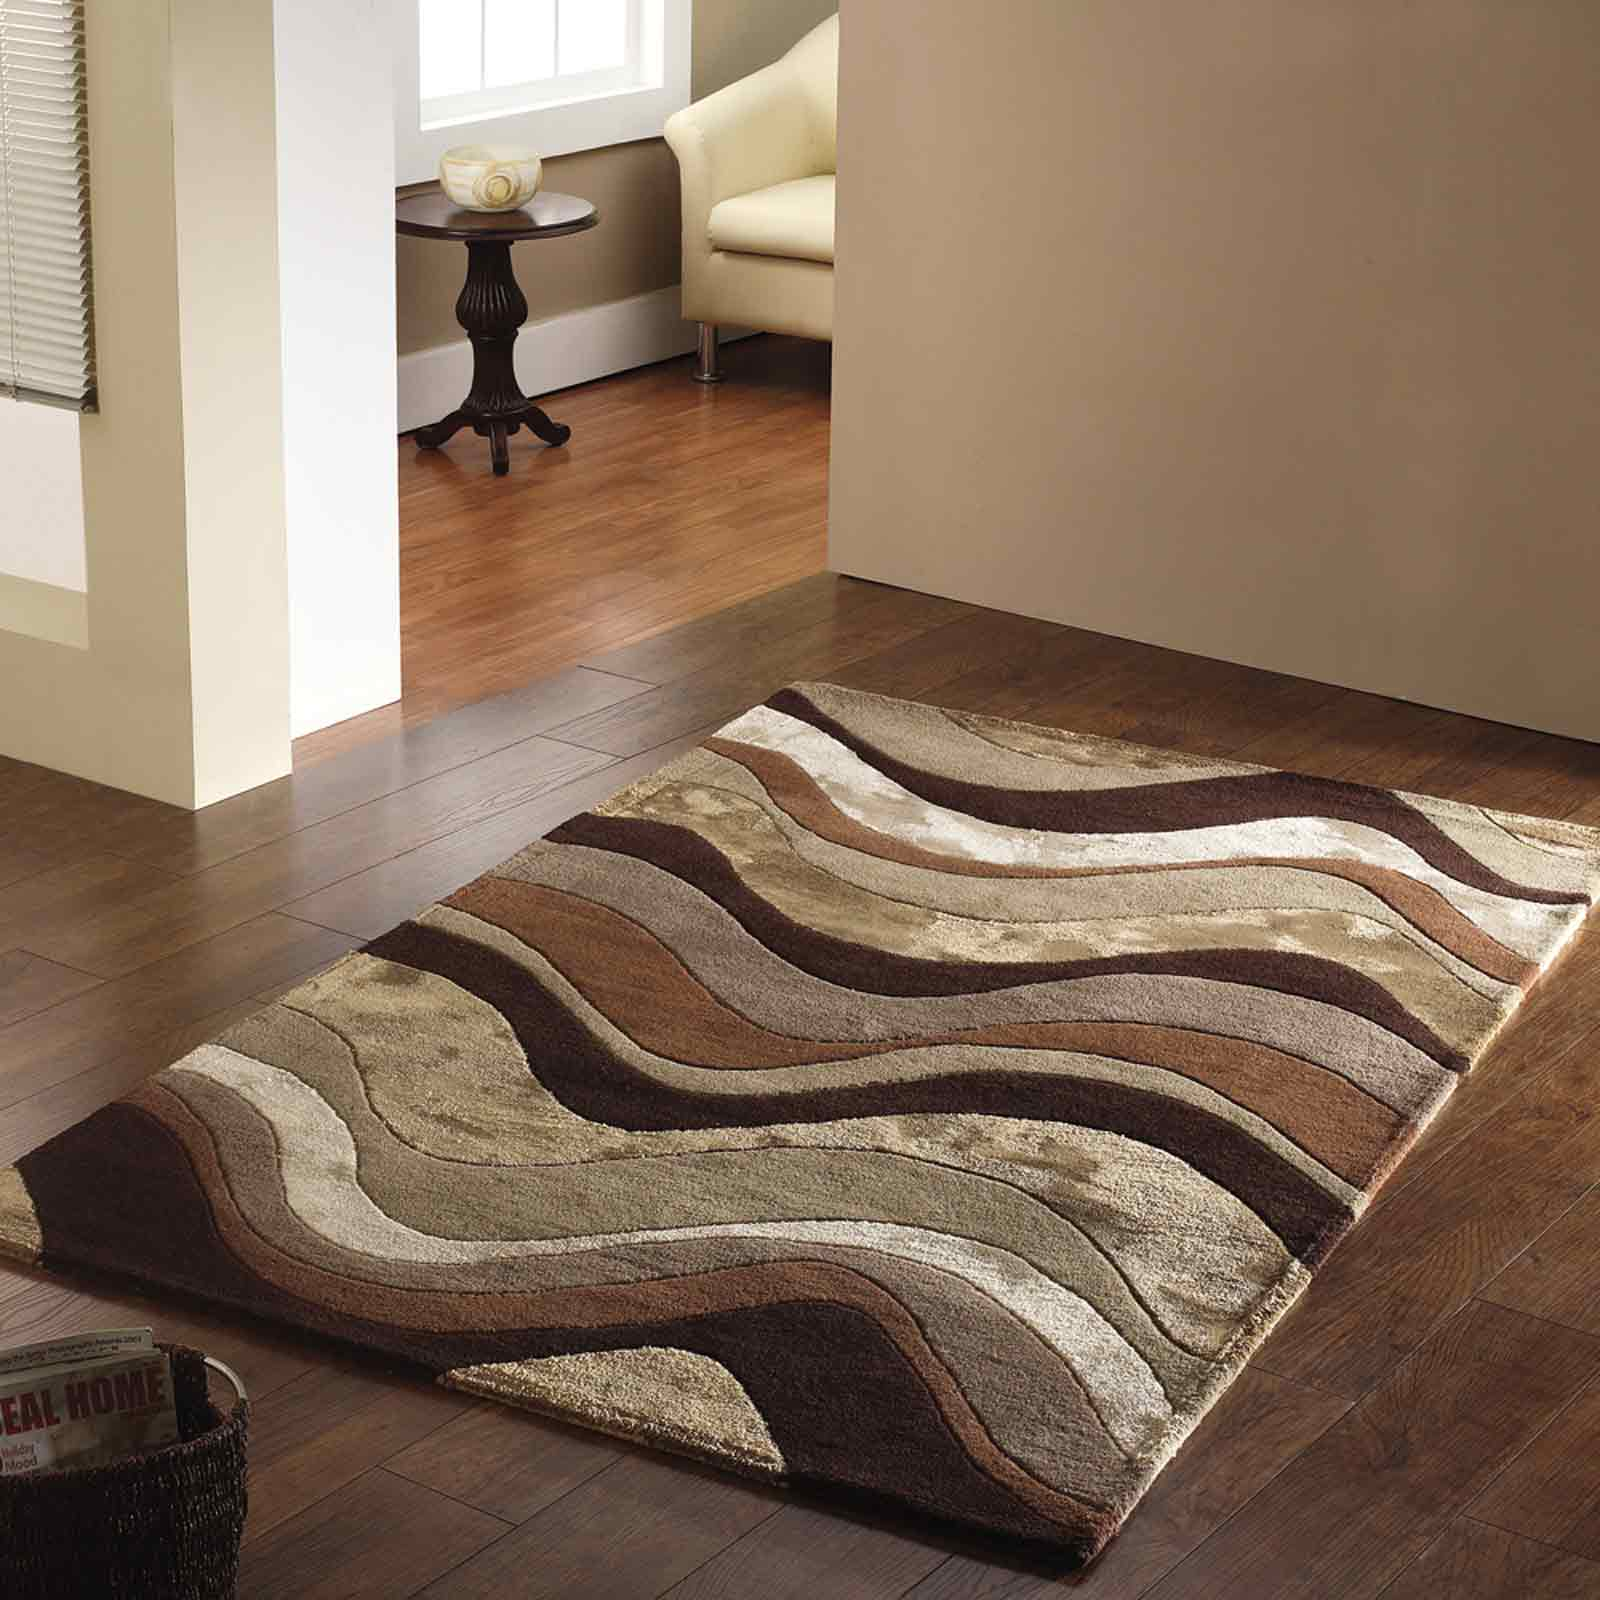 Botanical Saria Rugs in Brown